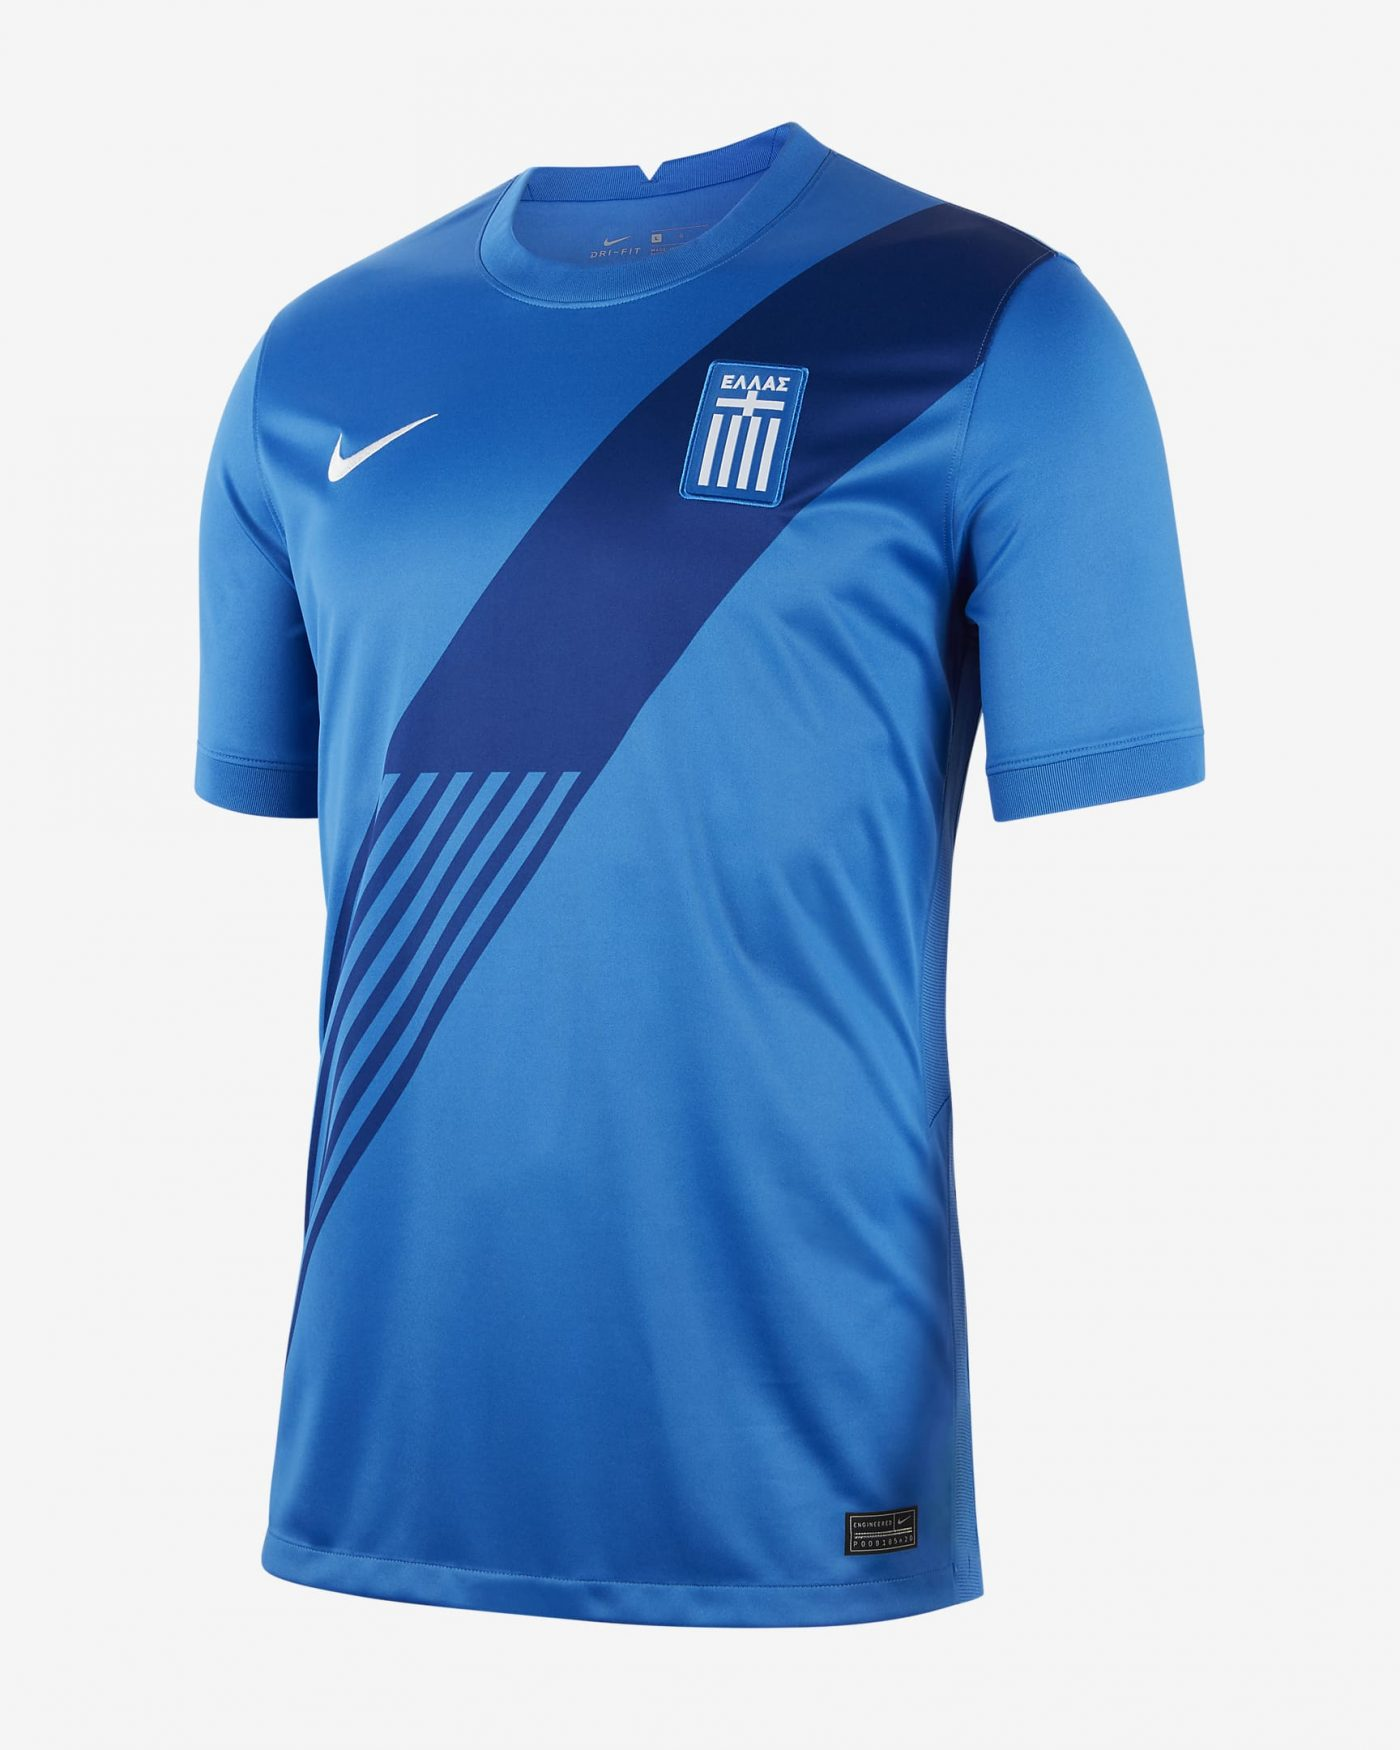 maillot-grece-exterieur-2020-nike